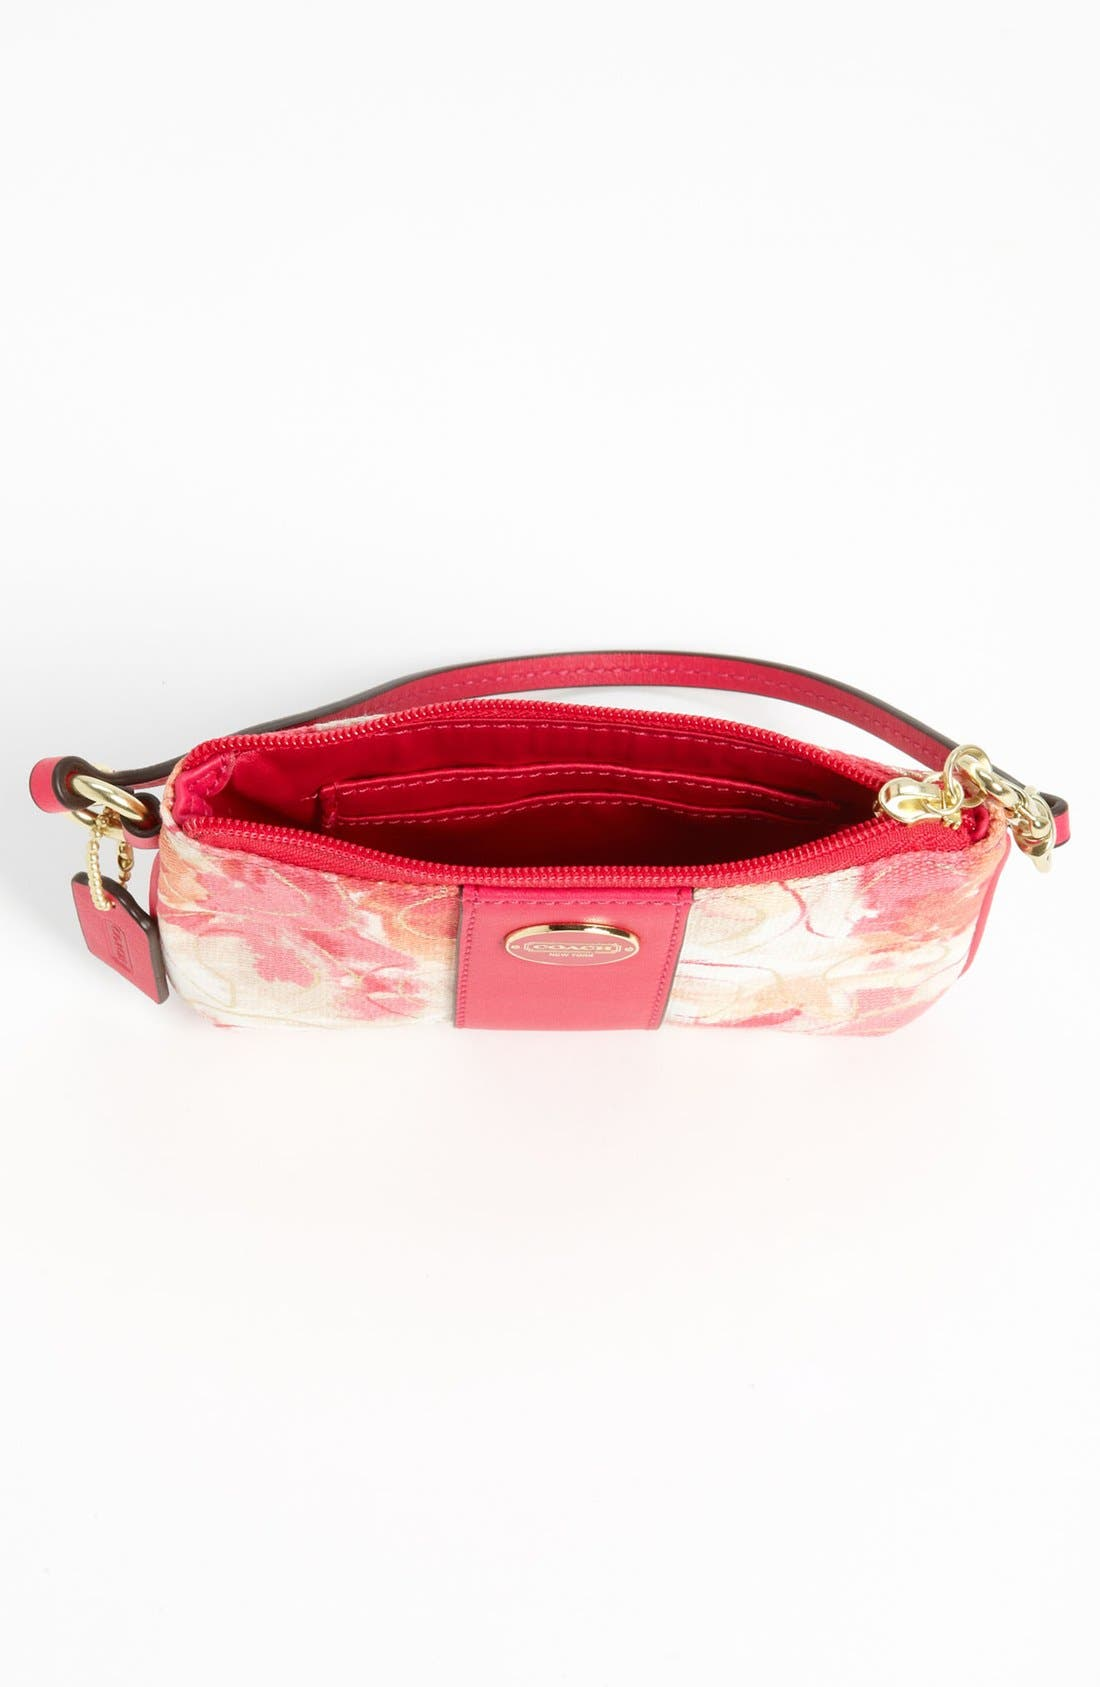 Alternate Image 3  - COACH 'Small' Floral Wristlet